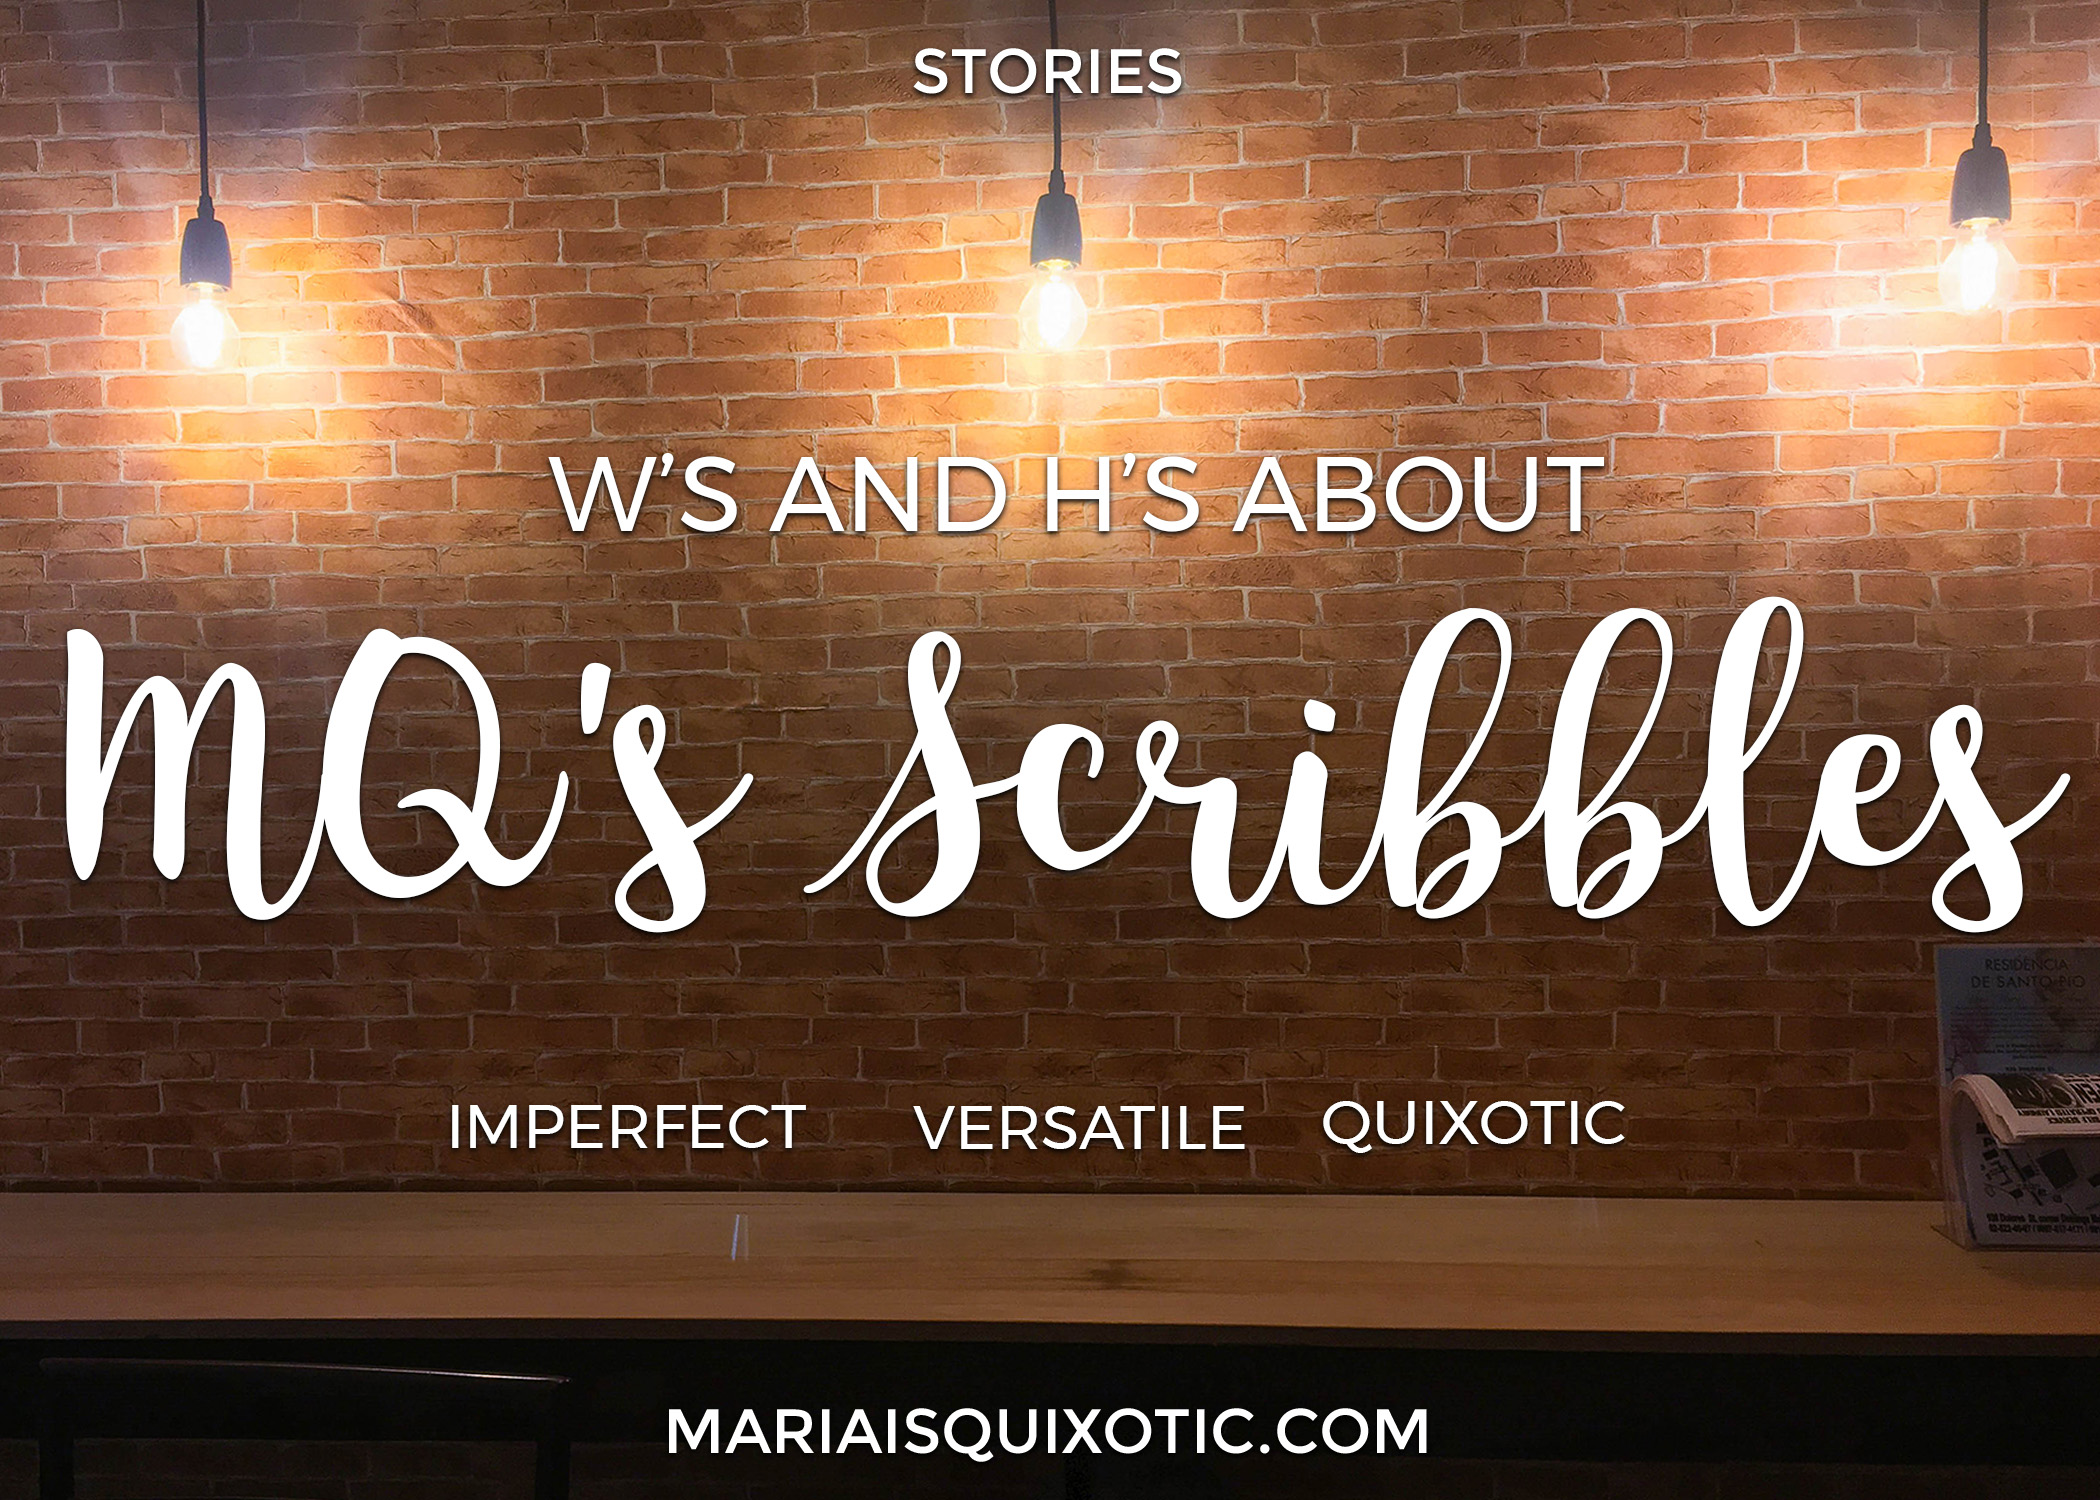 W's and H's about MQ's Scribbles